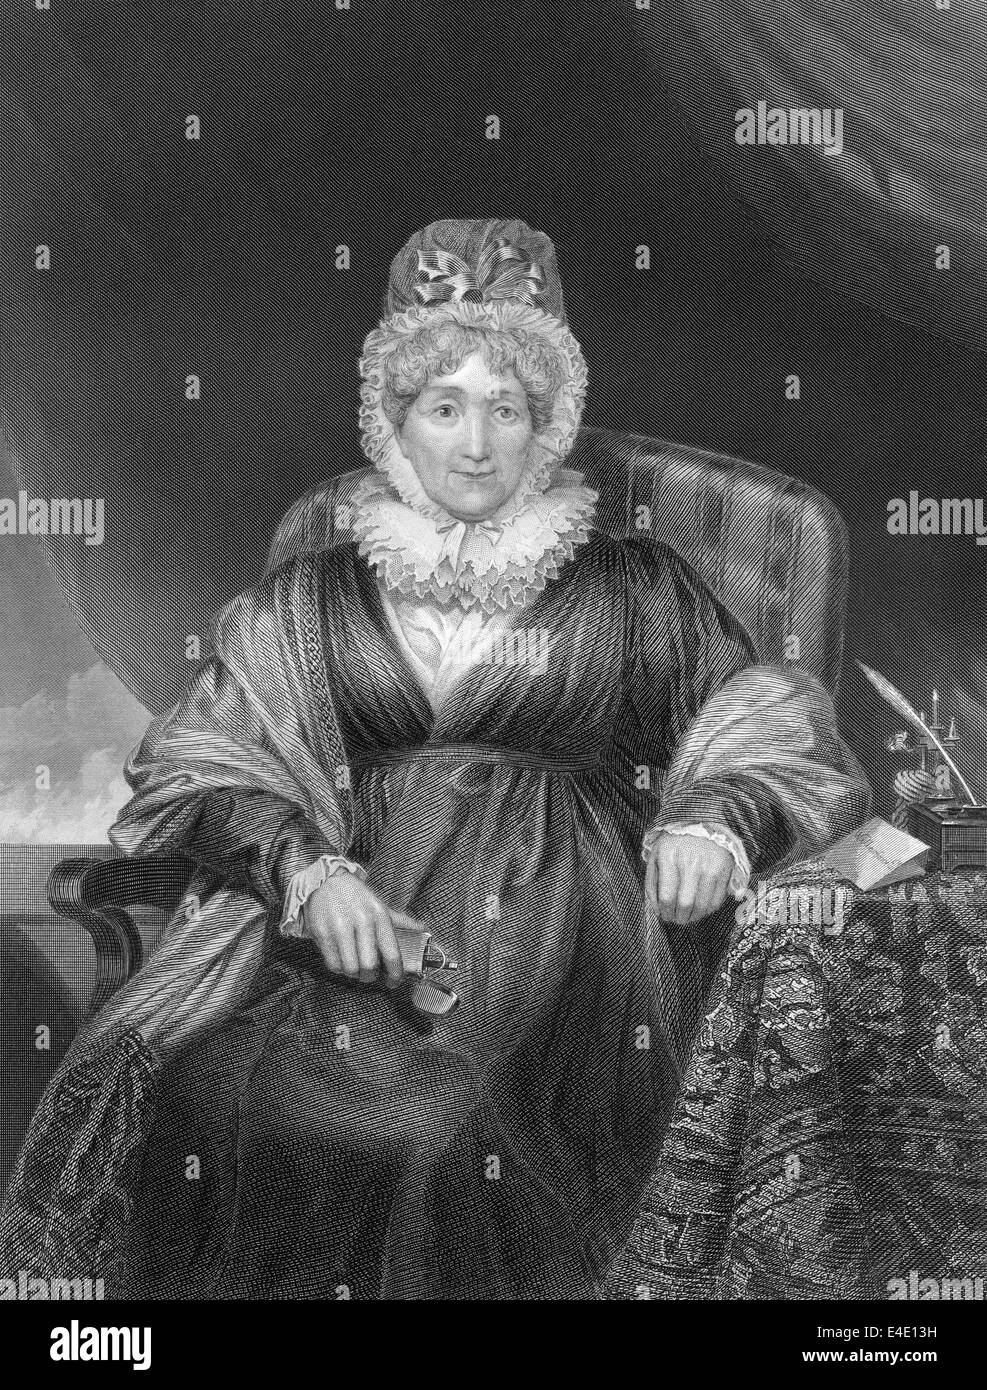 Hannah More, 1745 - 1833, an English religious writer and philanthropist, - Stock Image